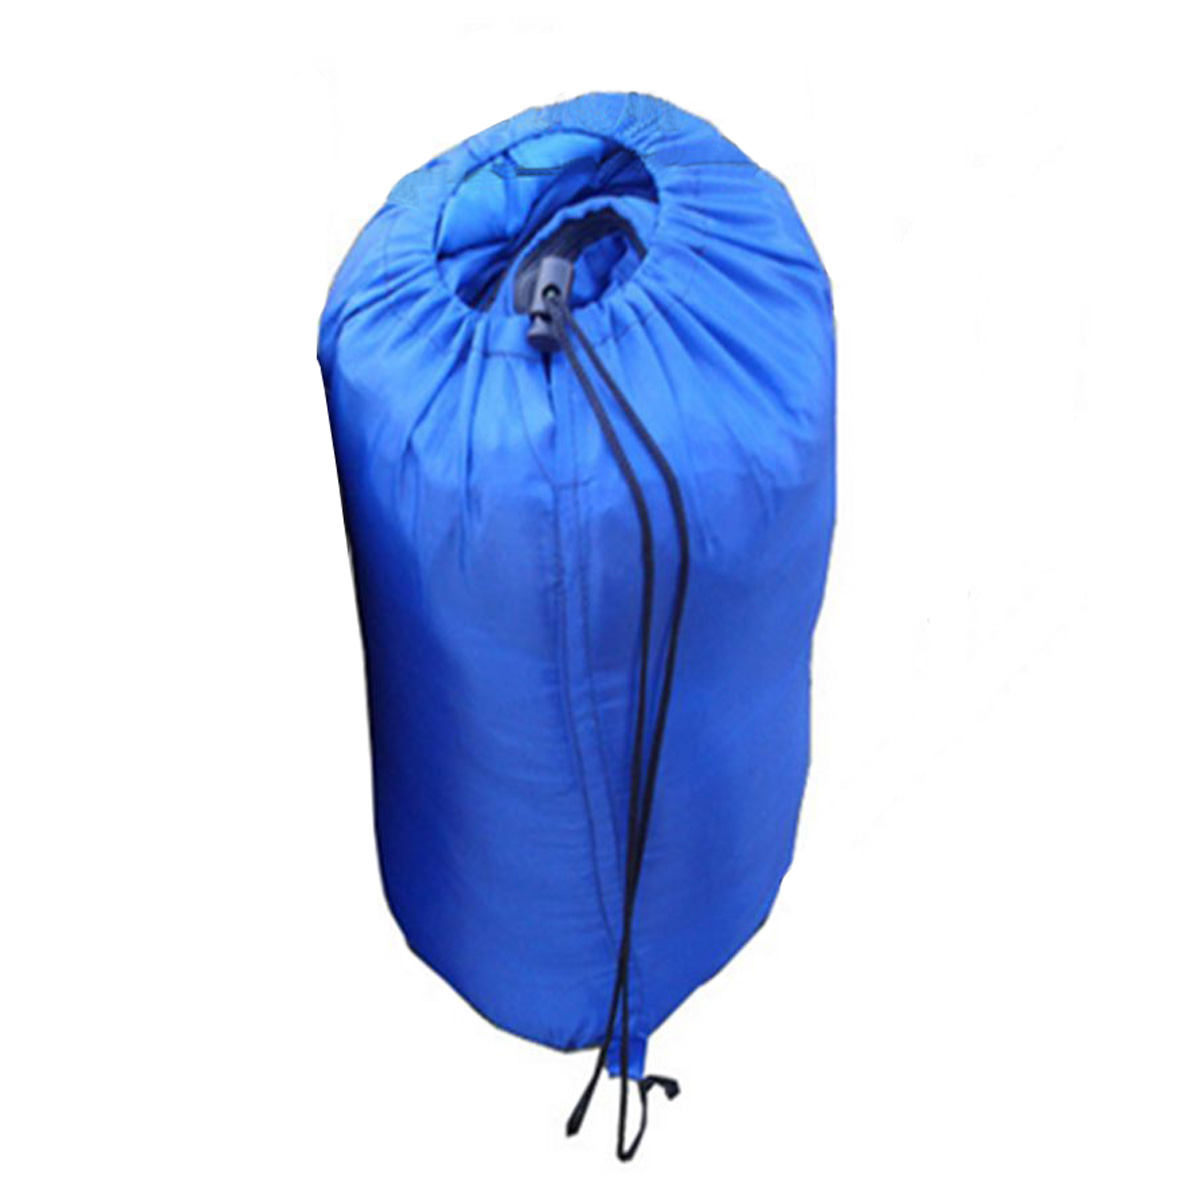 Jho Outdoor Waterproof Travel Envelope Sleeping Bag Camping Hiking Carrying Case Blue In Bags From Sports Entertainment On Aliexpress